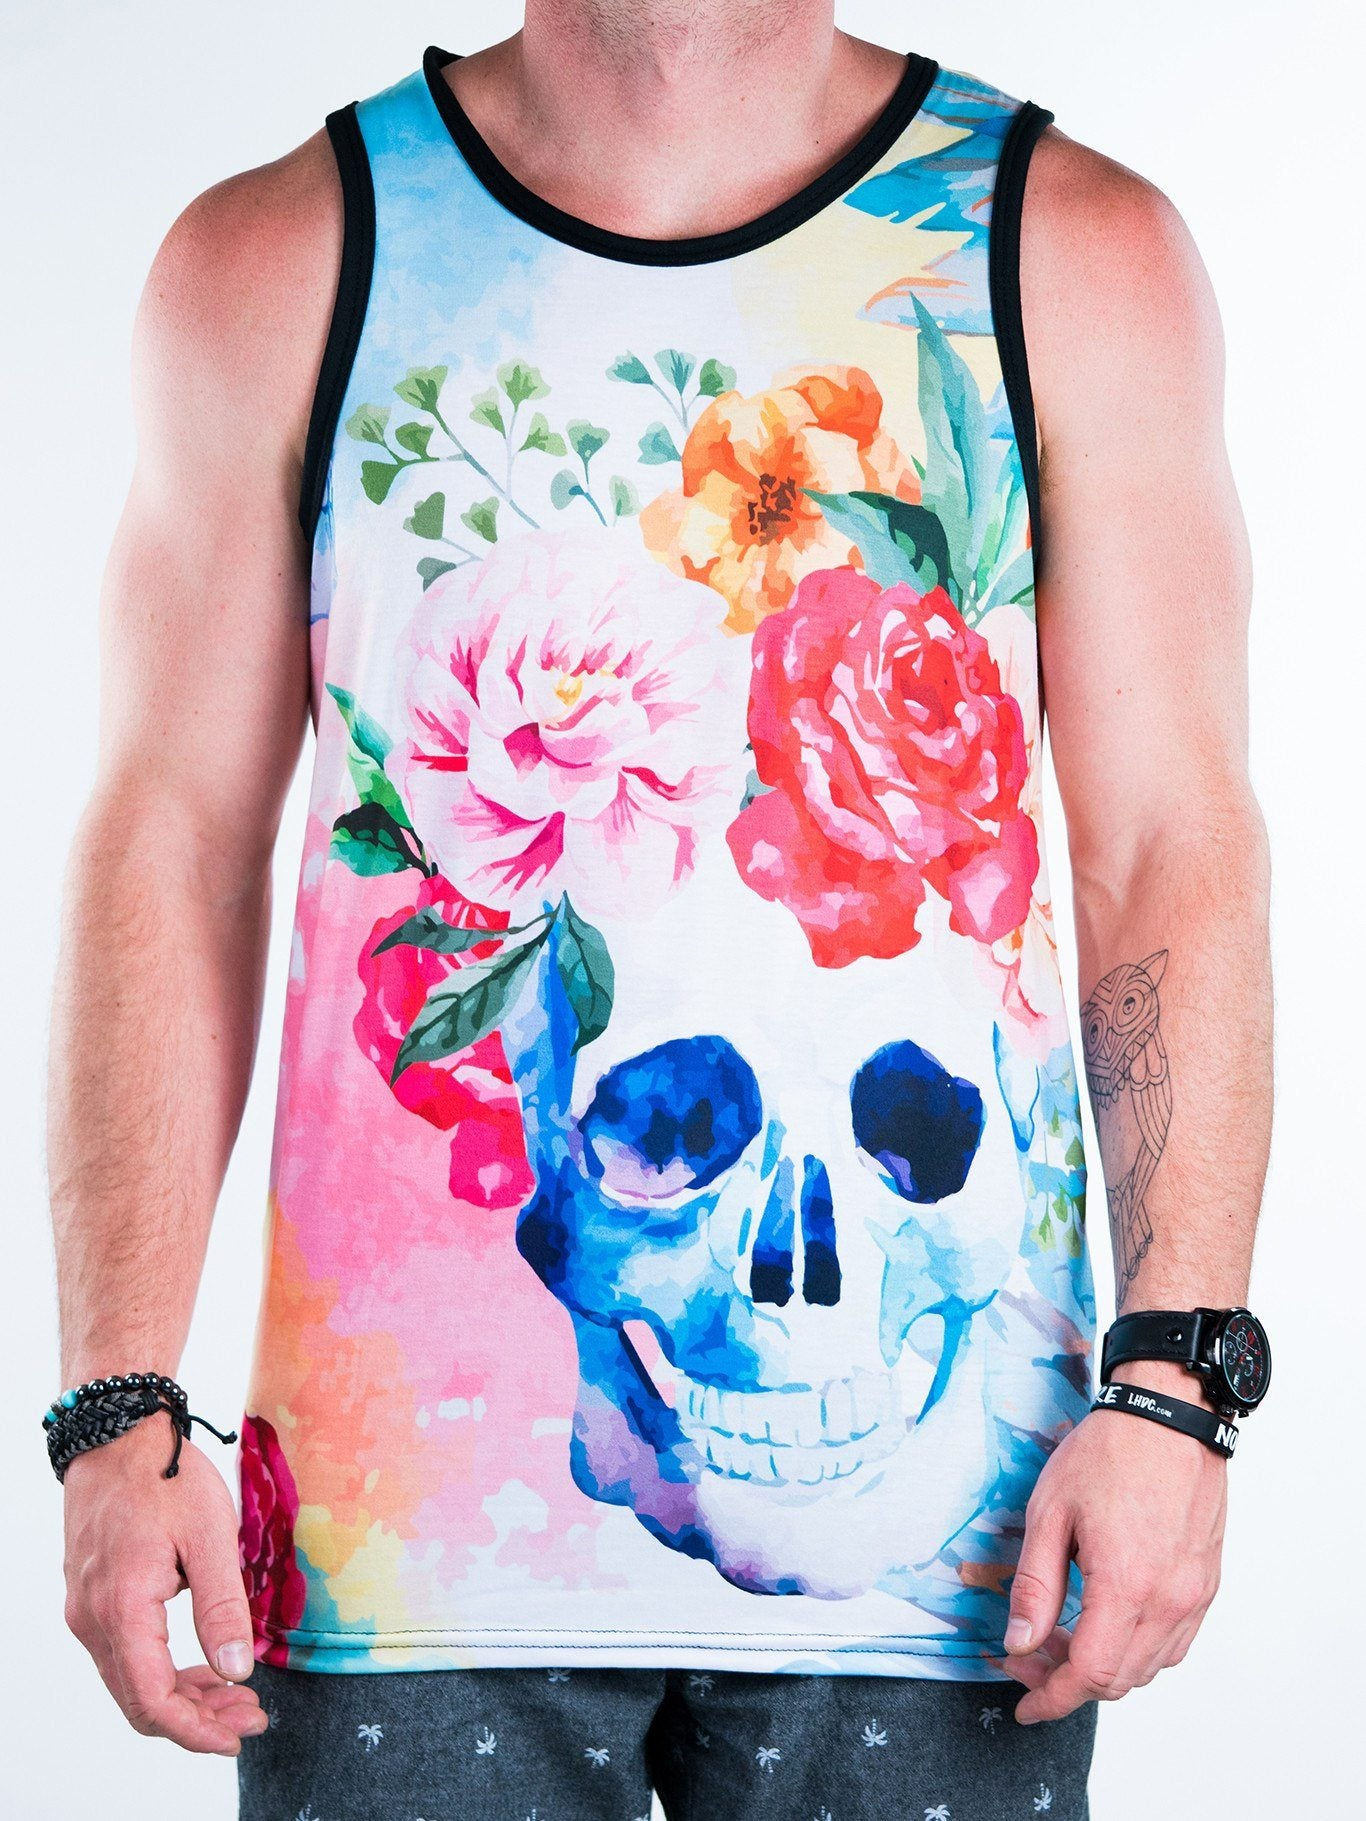 Life and Death Unisex Tank Top Tank Tops T6